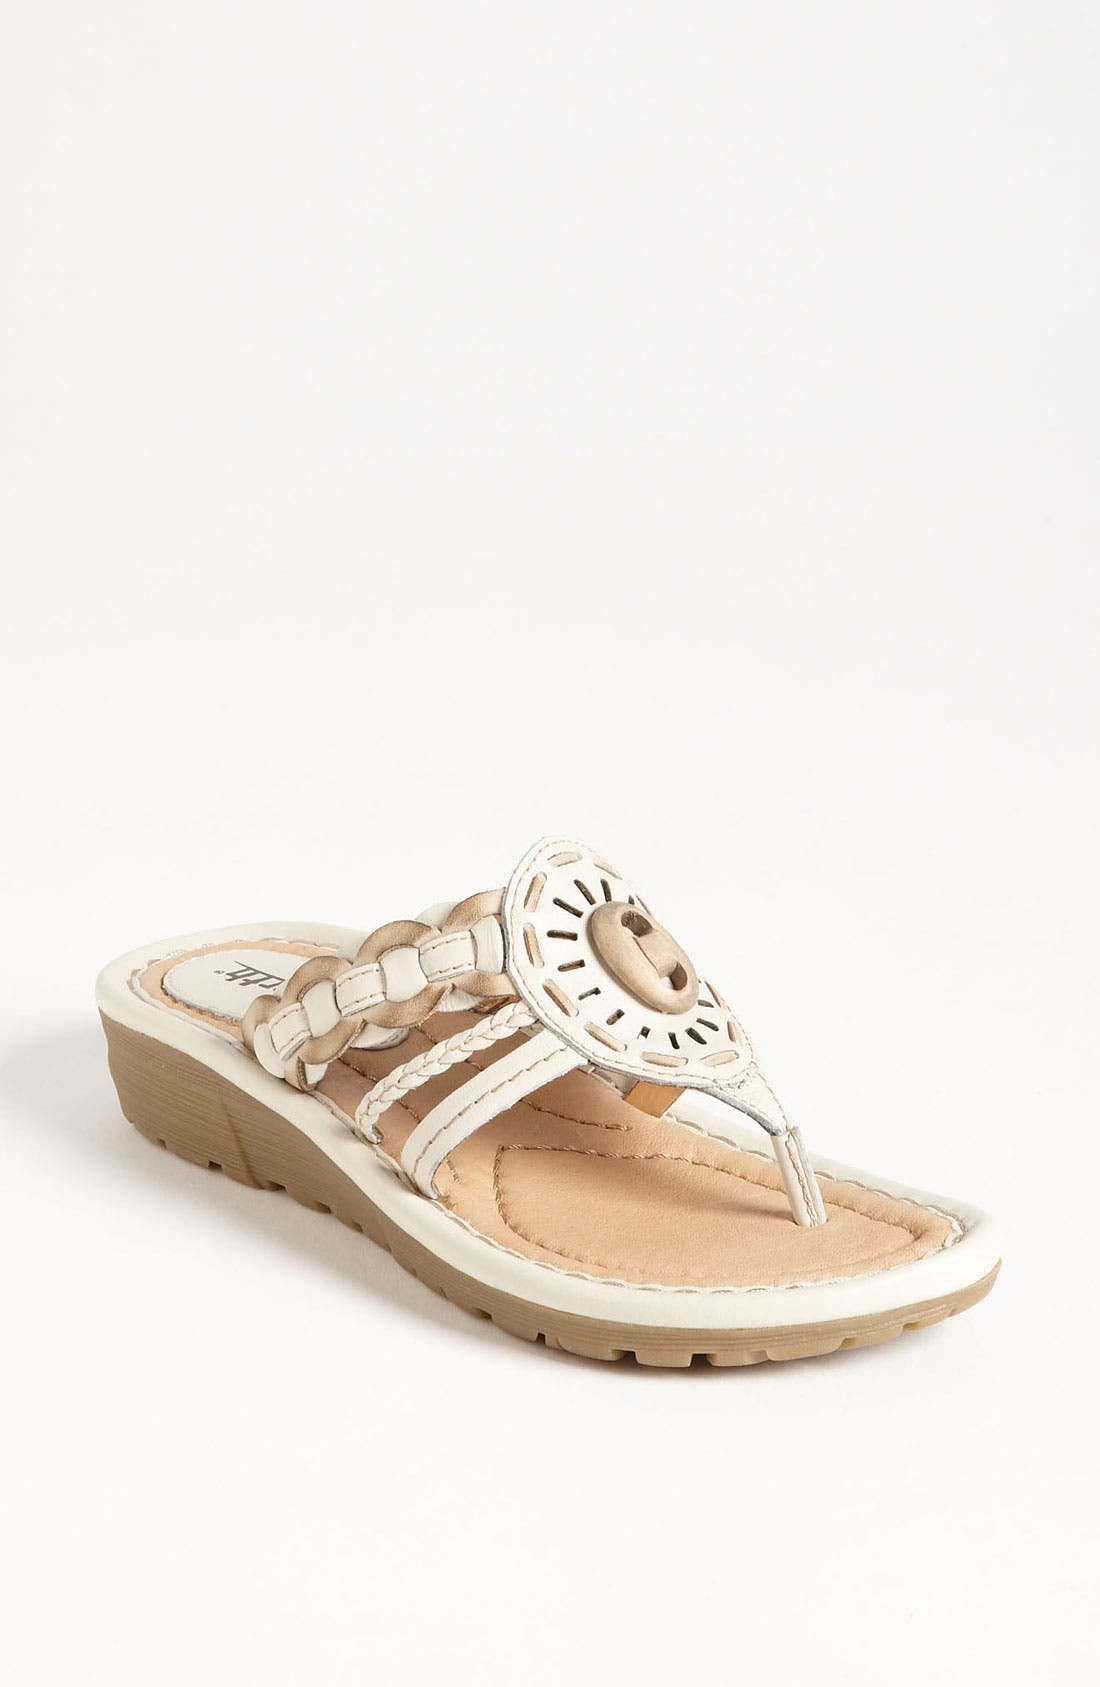 Alternate Image 1 Selected - Earth® 'Gale' Sandal